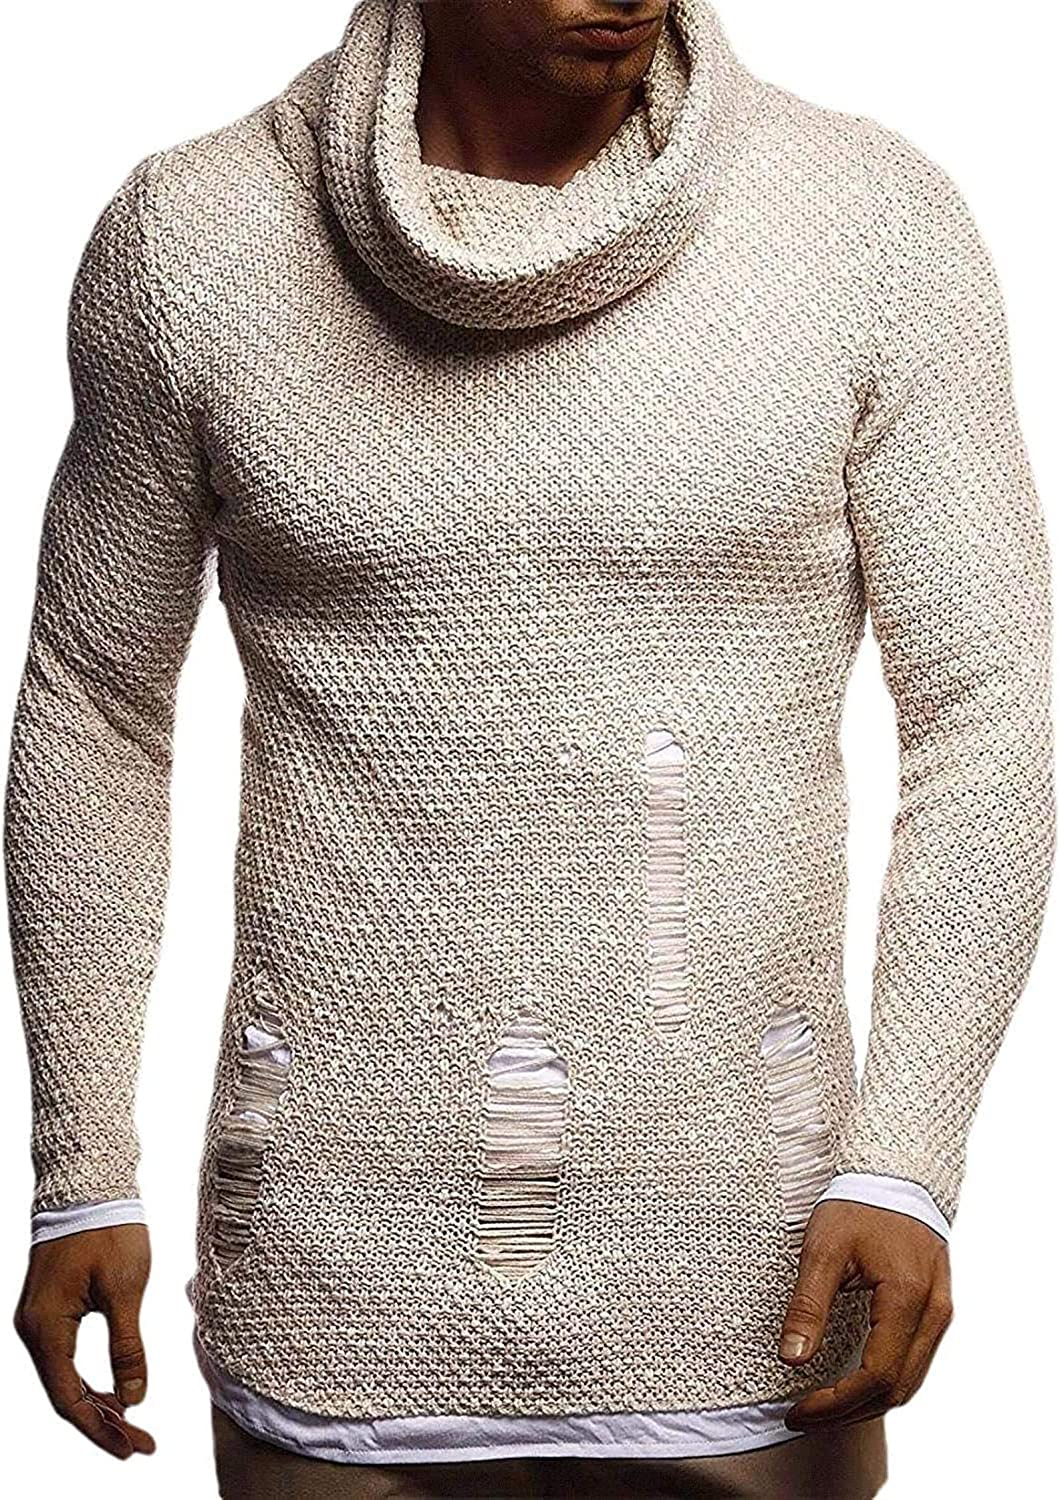 QNMGB Men Max 61% OFF Pullover Cable Knit Long Seattle Mall Swea Turtleneck Ripped Sleeve